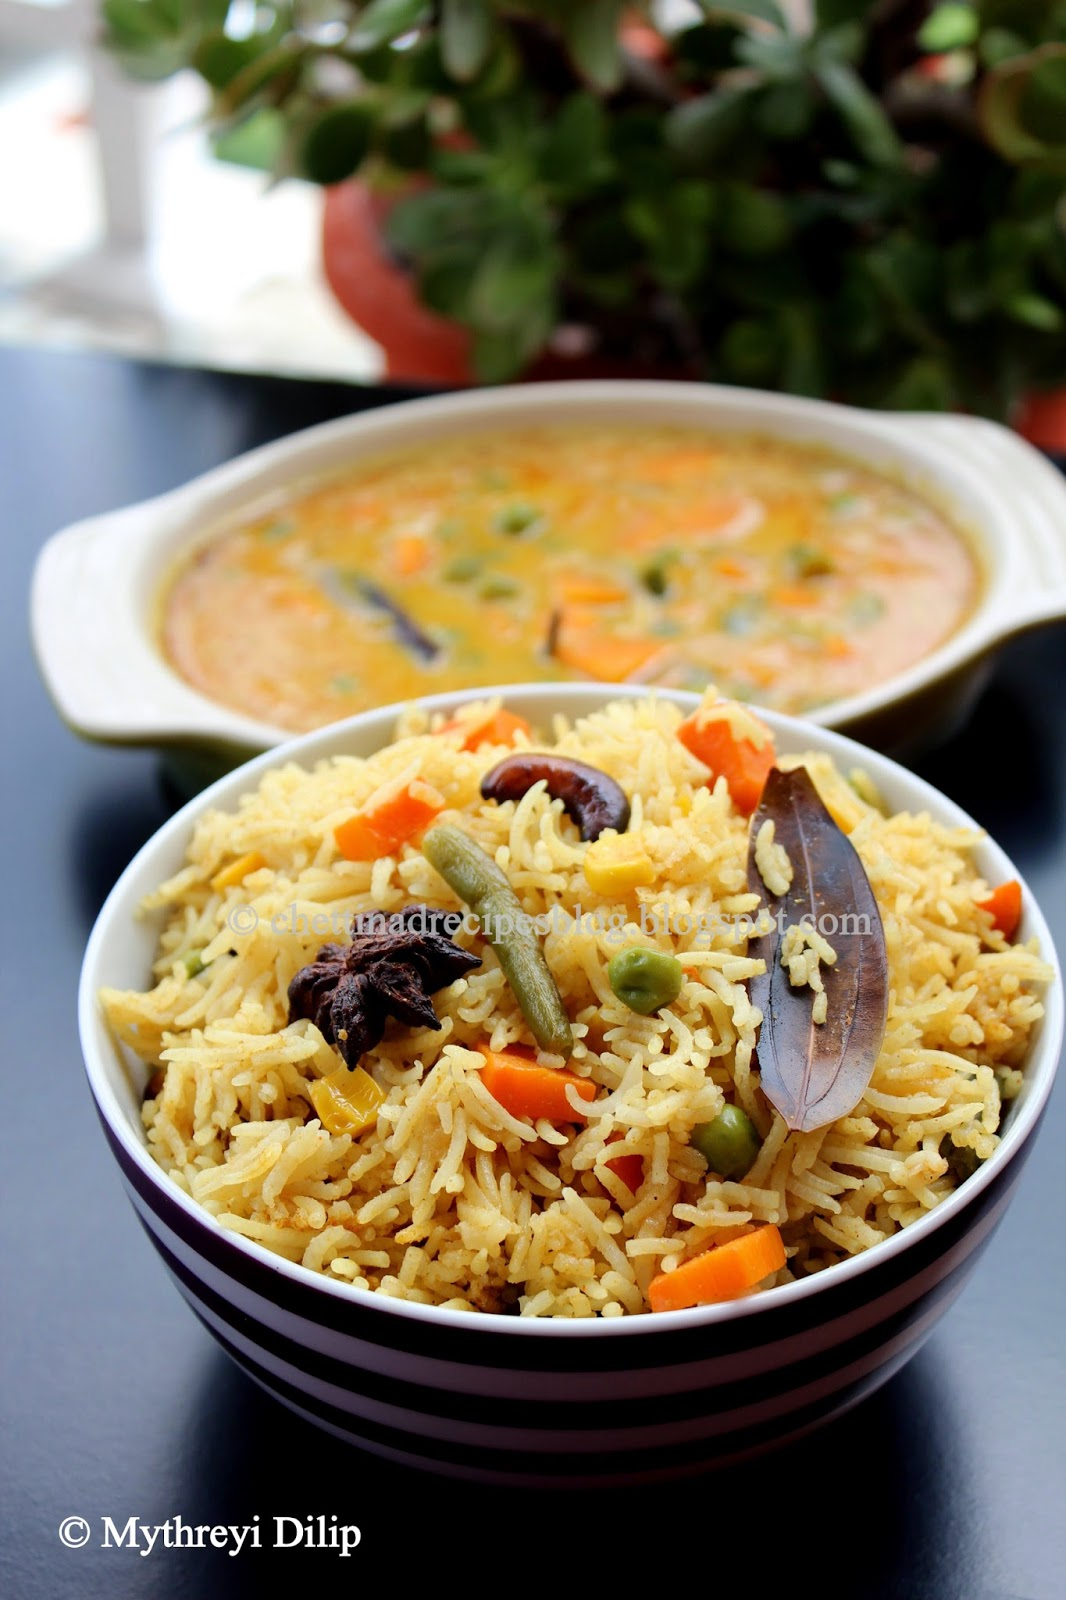 Chettinad veg pulao recipe vegetable pulav chettinad recipes chettinad veg pulao recipe vegetable pulav forumfinder